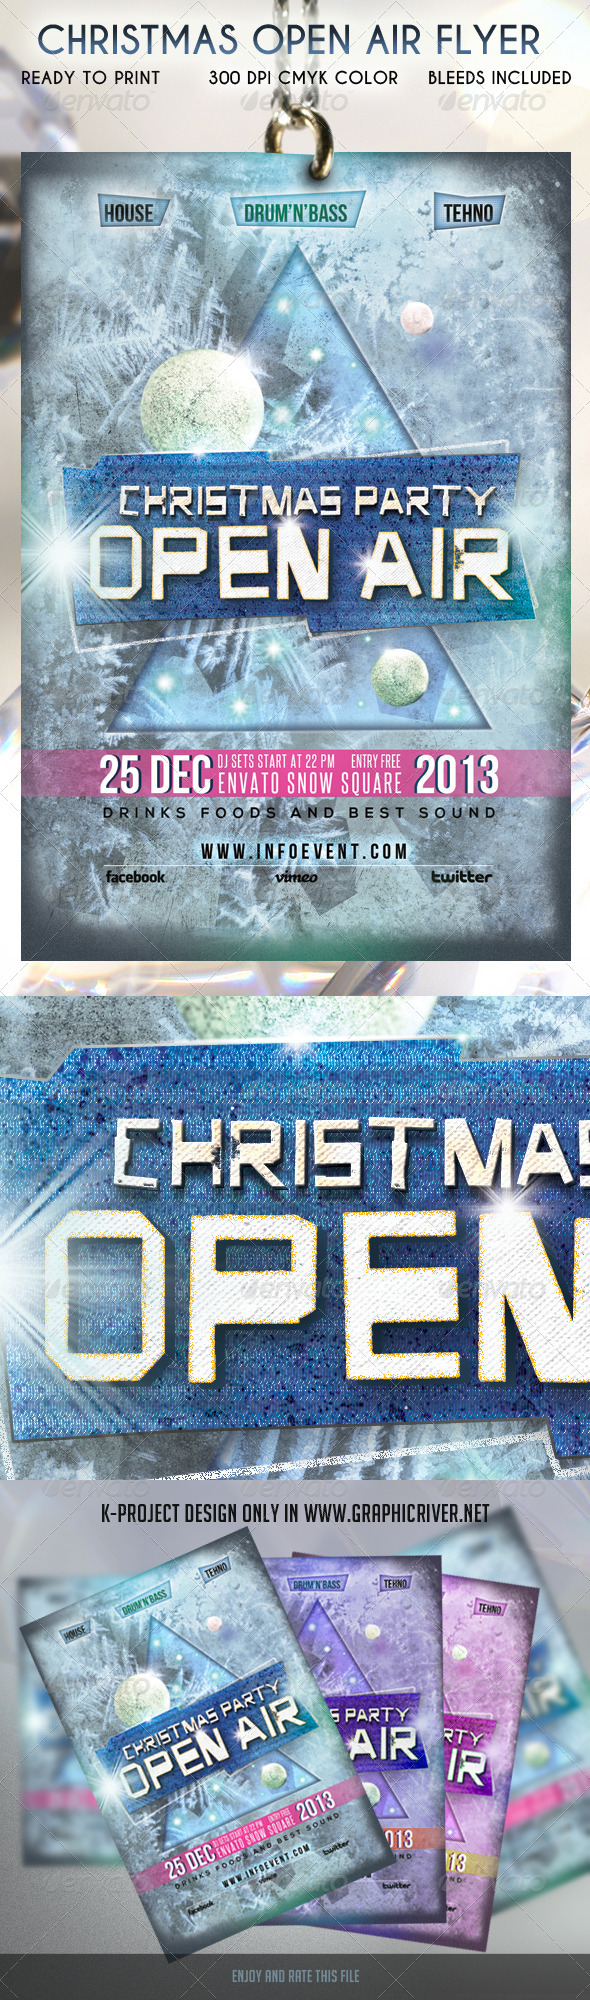 GraphicRiver Christmas Open Air Flyer 6059926